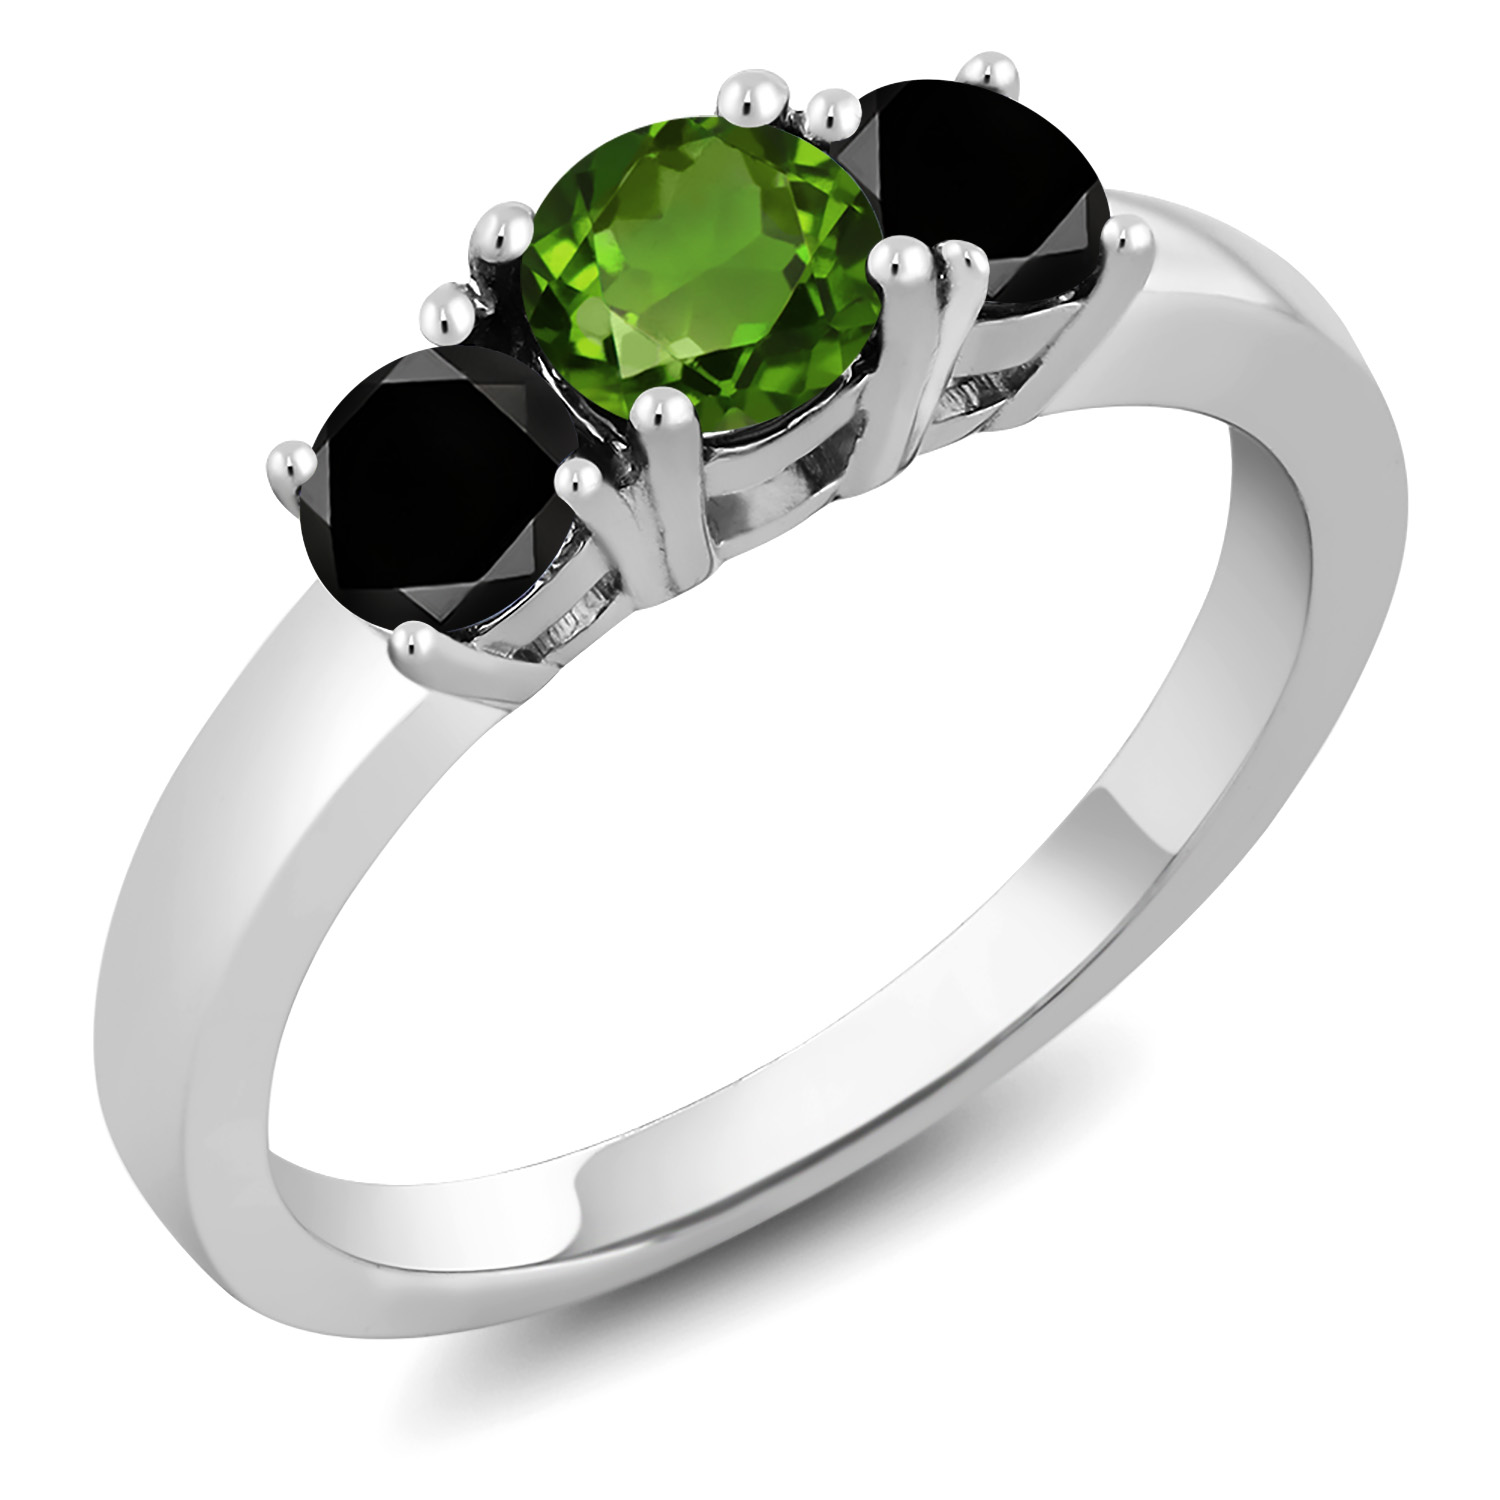 1.47 Ct Oval Peridot 925 Two-Tone Sterling Silver Wedding Band Insert Ring